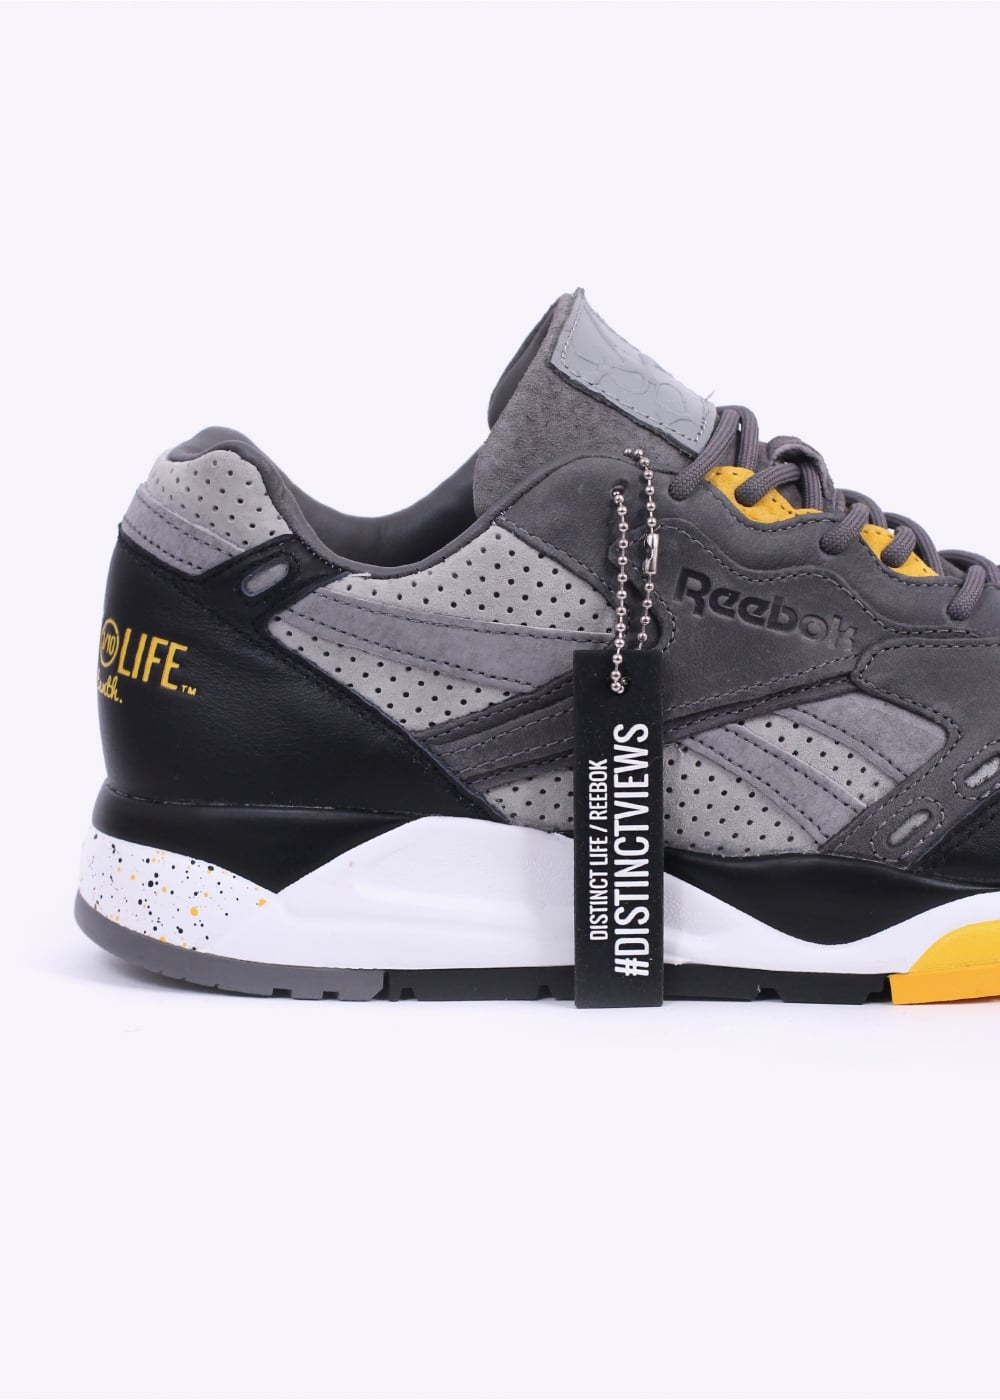 59787597e83 Reebok x Distinct Life Bolton DV  Distinct Views - Detroit  Trainers ...